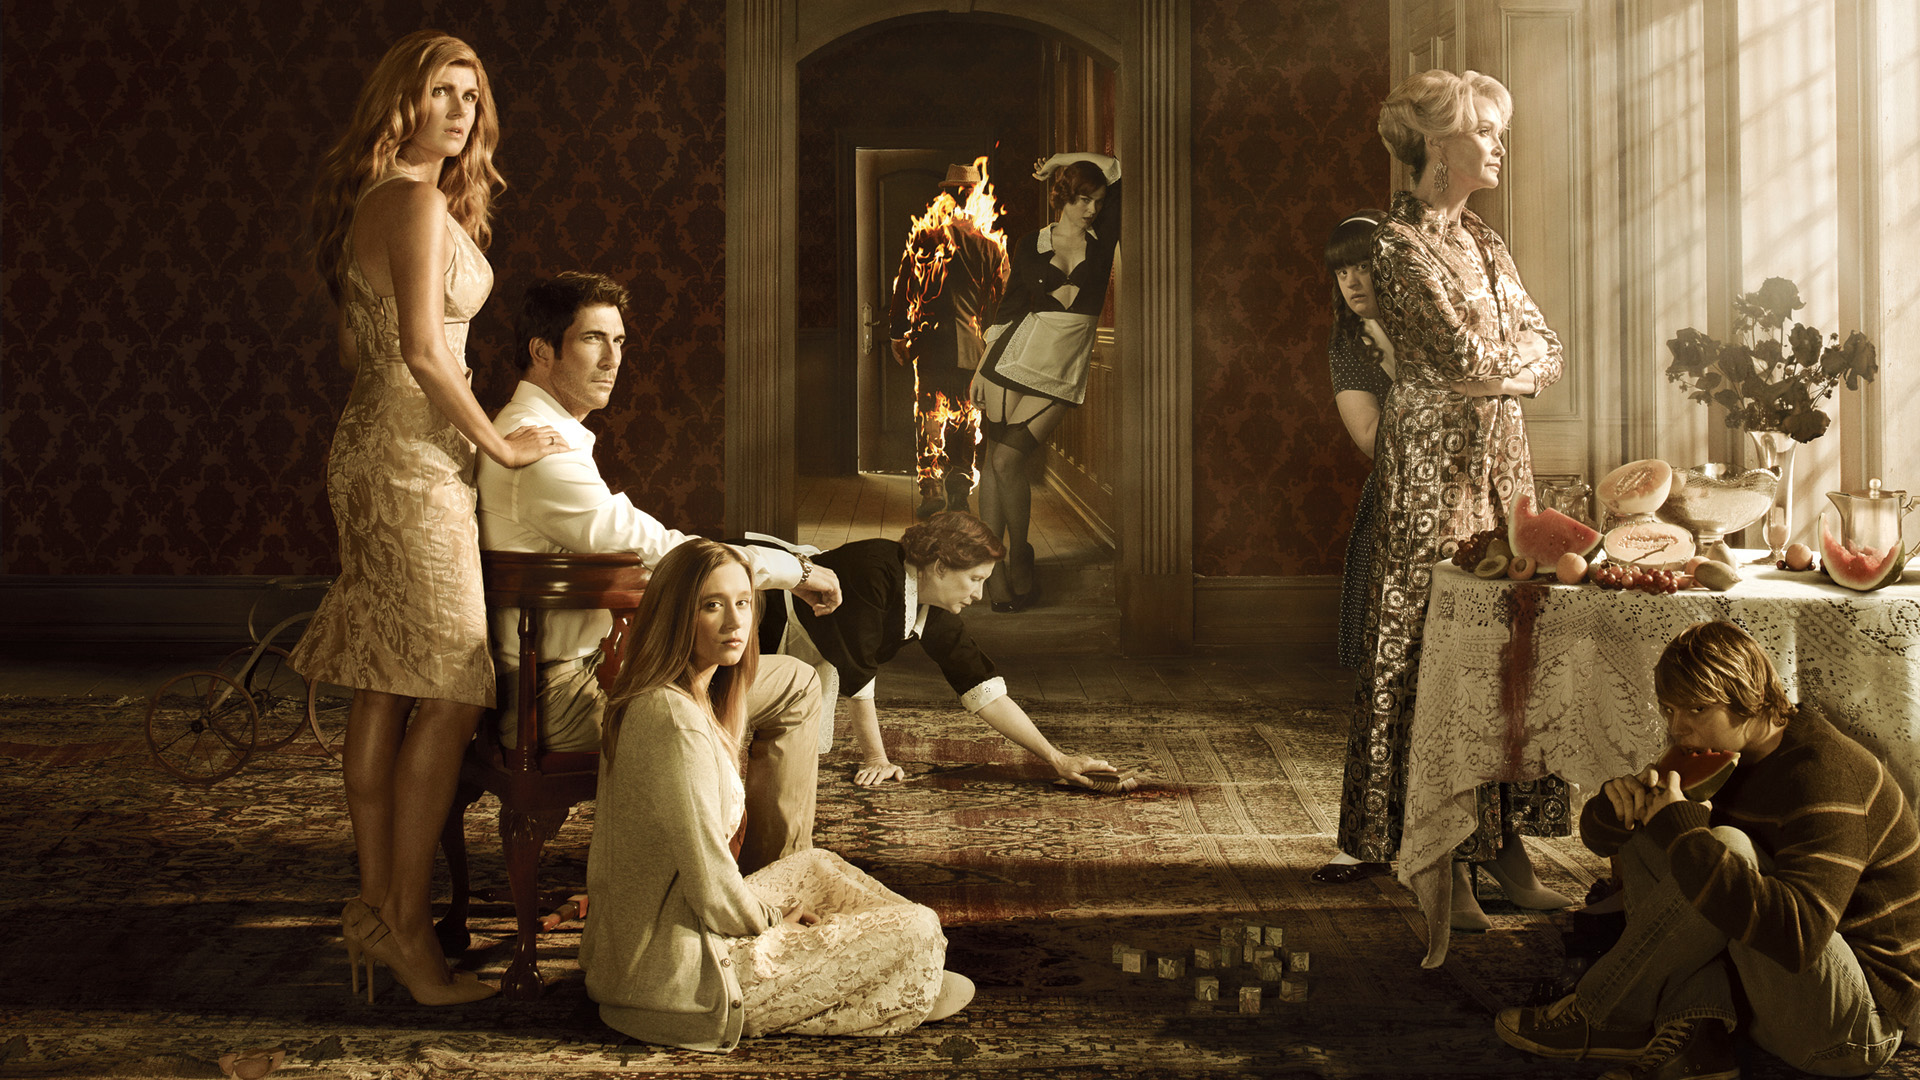 American horror story hd wallpapers for desktop download - The last story hd ...